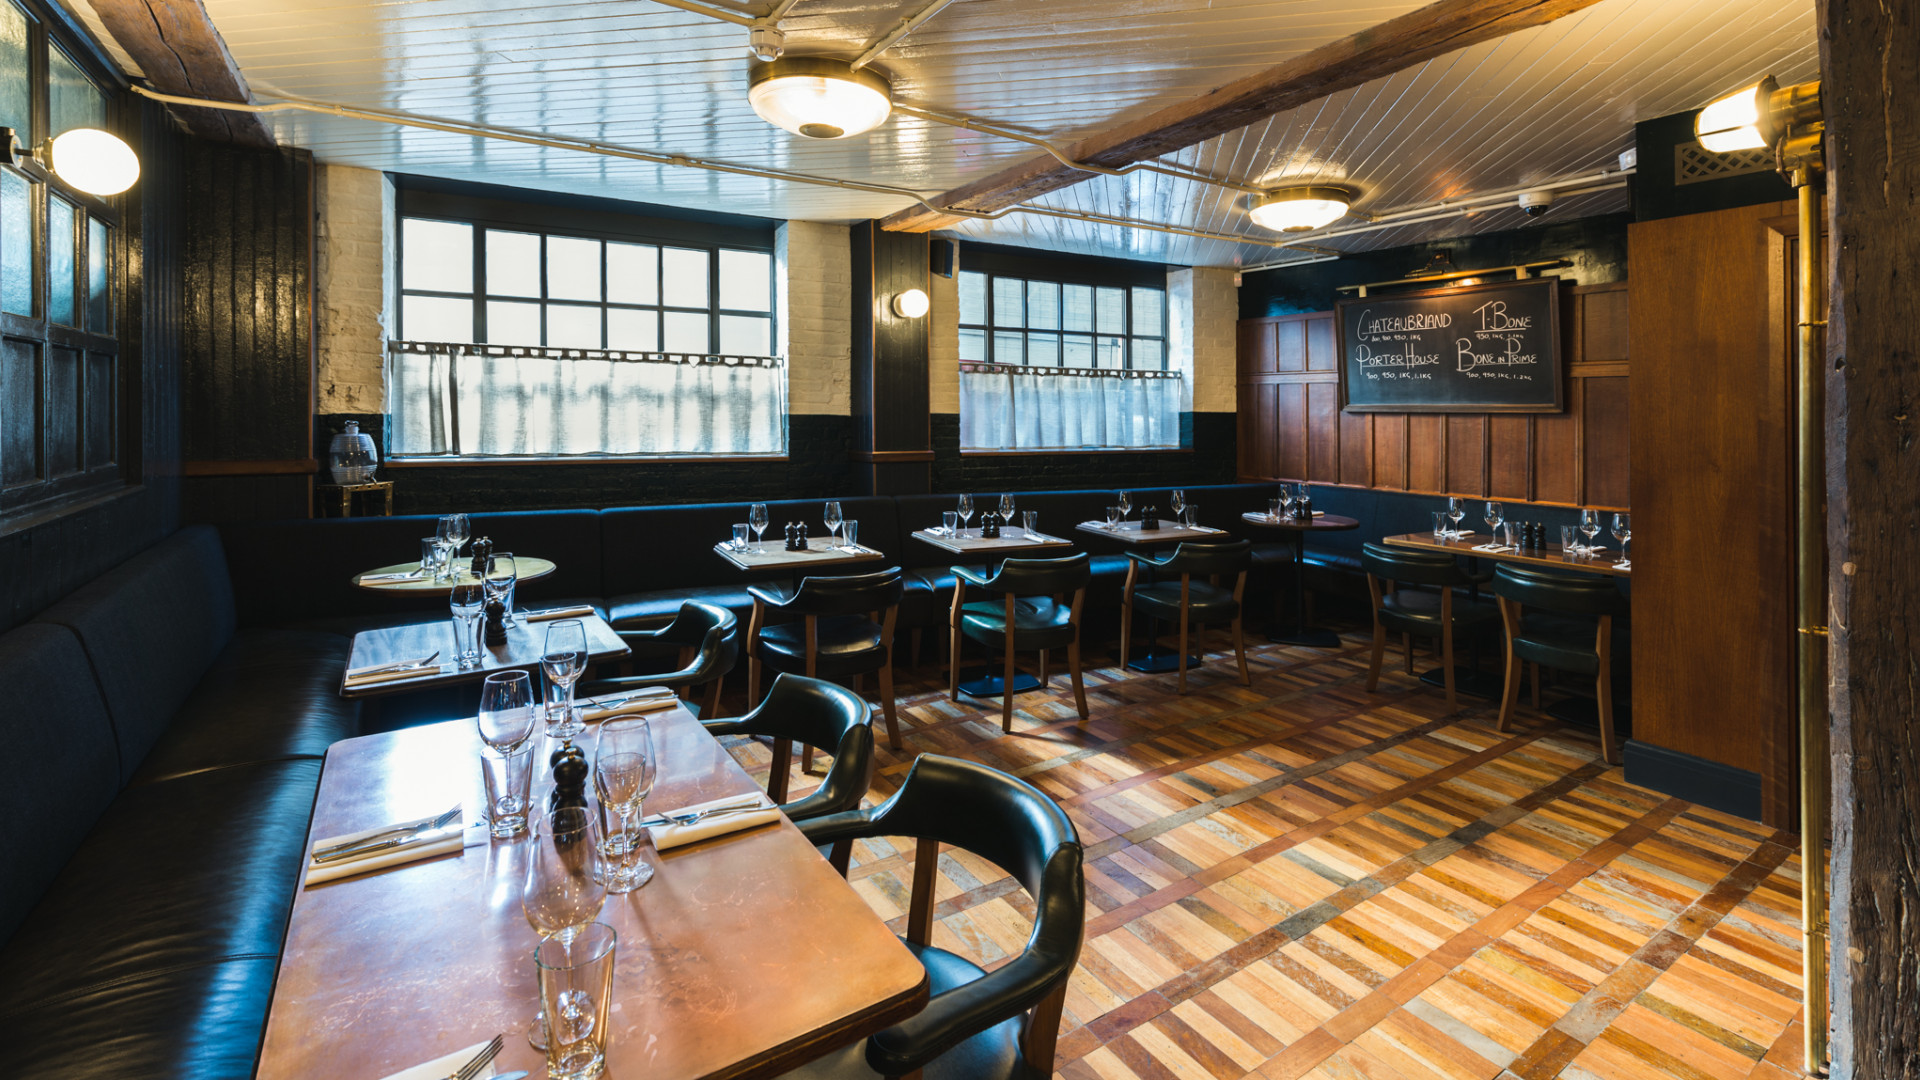 The dining room at Hawksmoor Borough